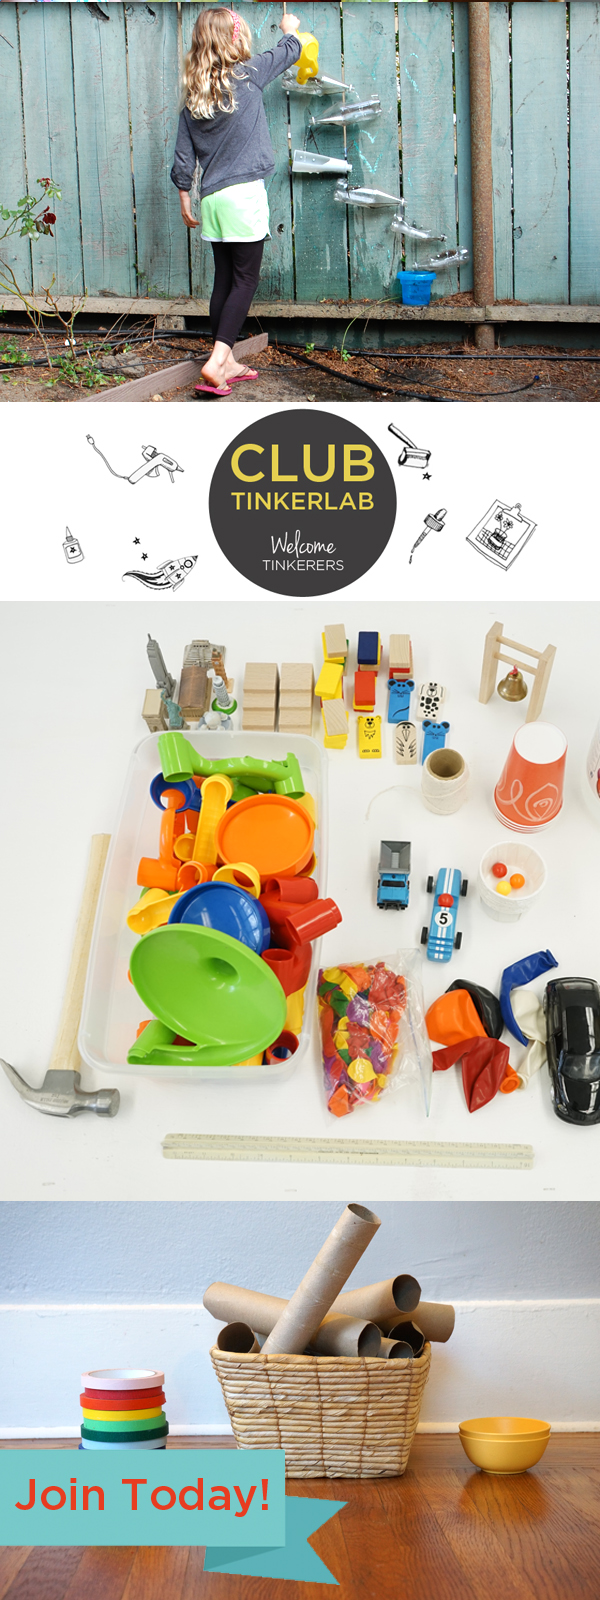 Join Club TinkerLab - an online tinkering club for people who are interested in making, inventing, tinkering, educating, and engineering with kids.